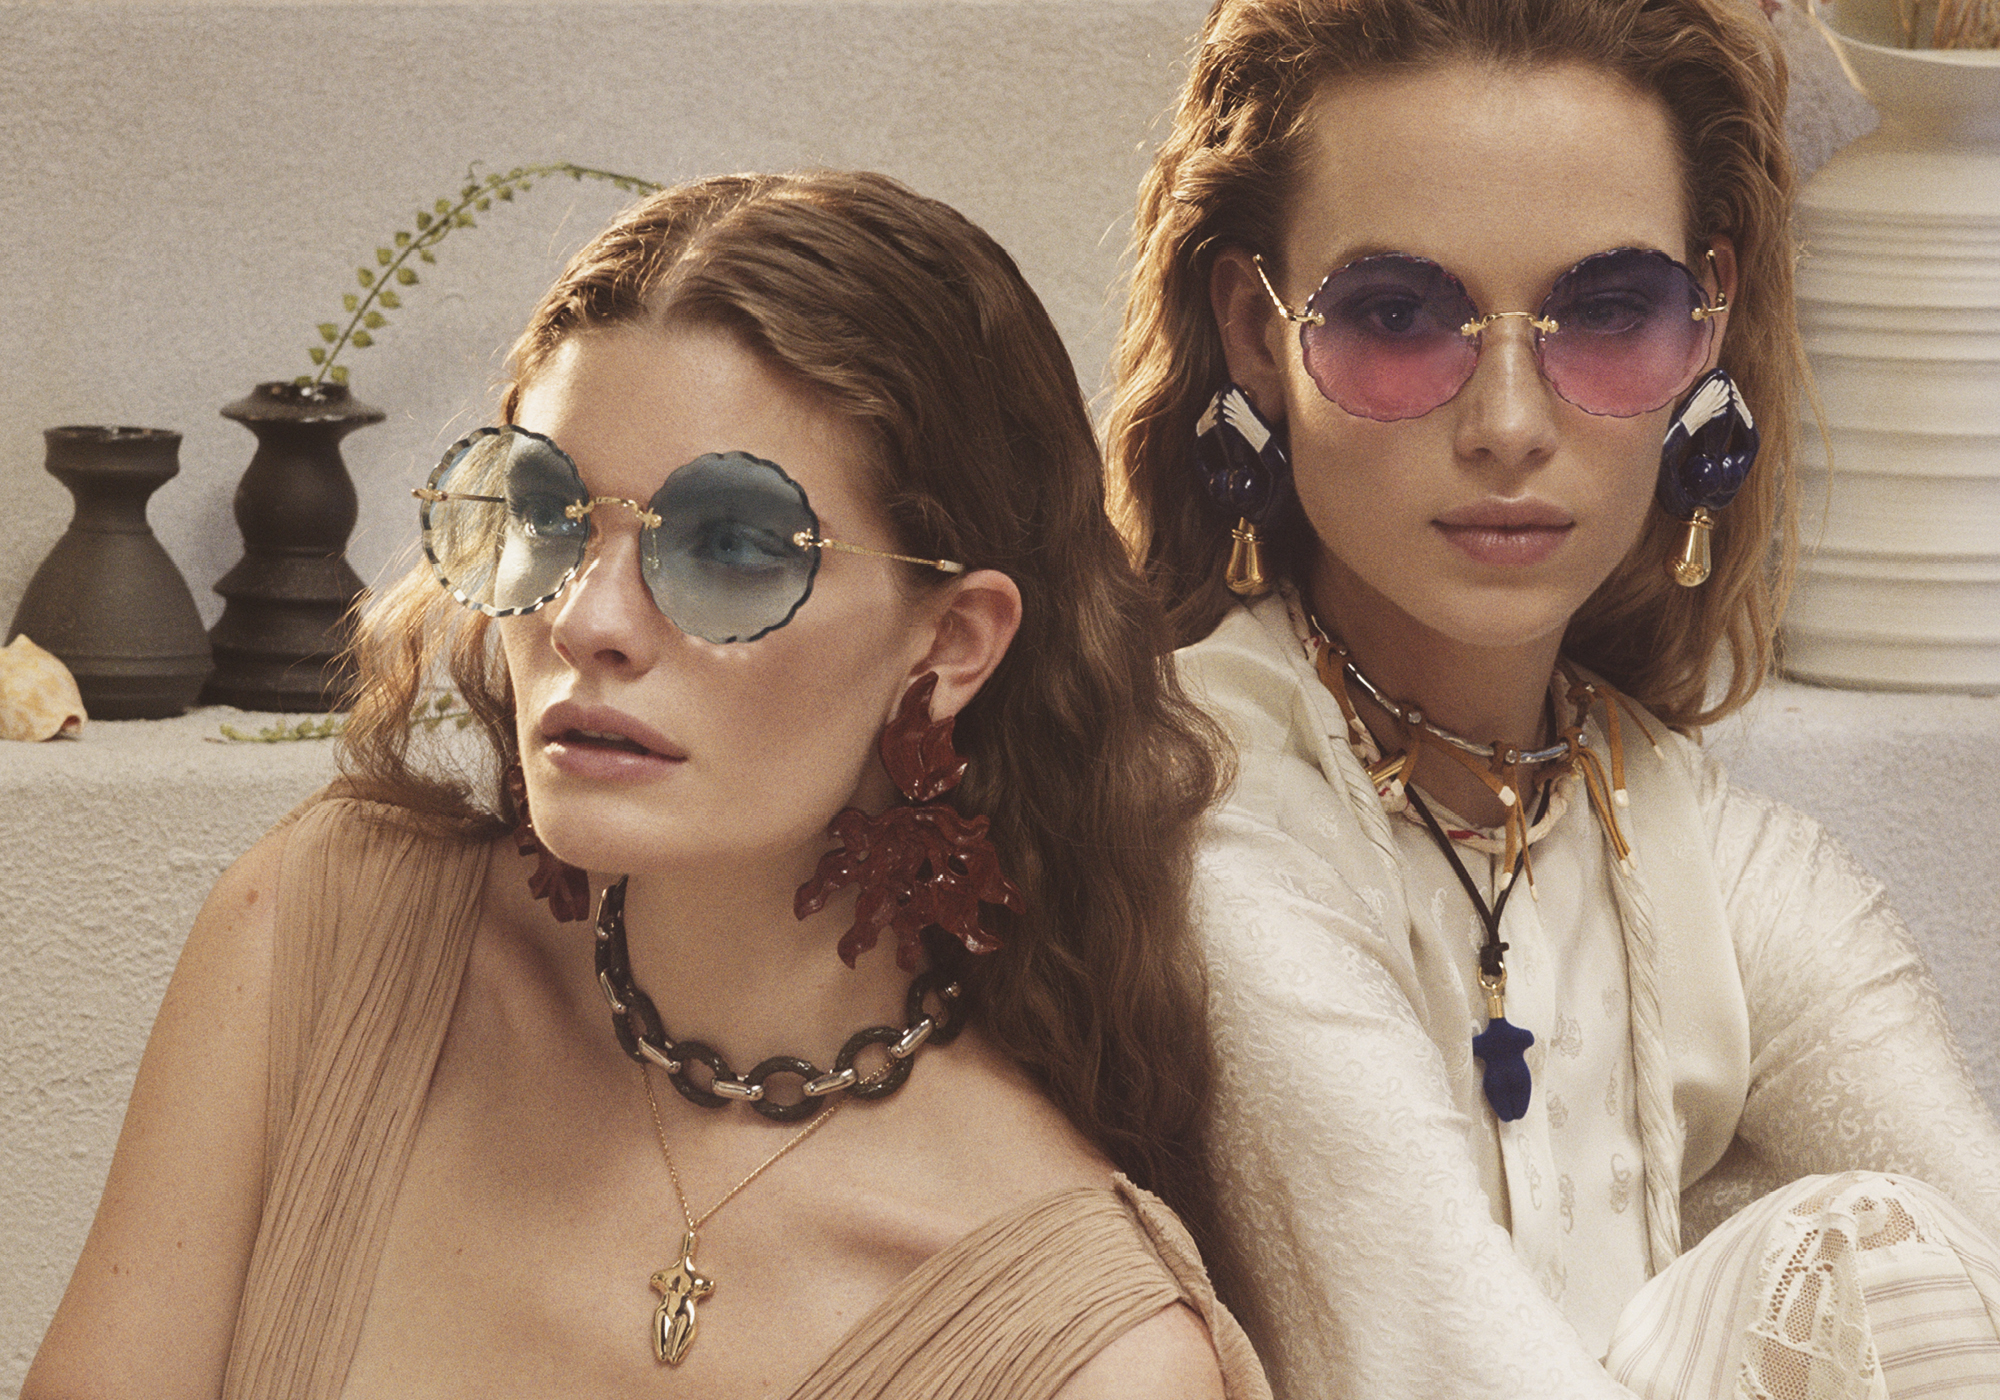 Chloe Eyewear 2019 collection